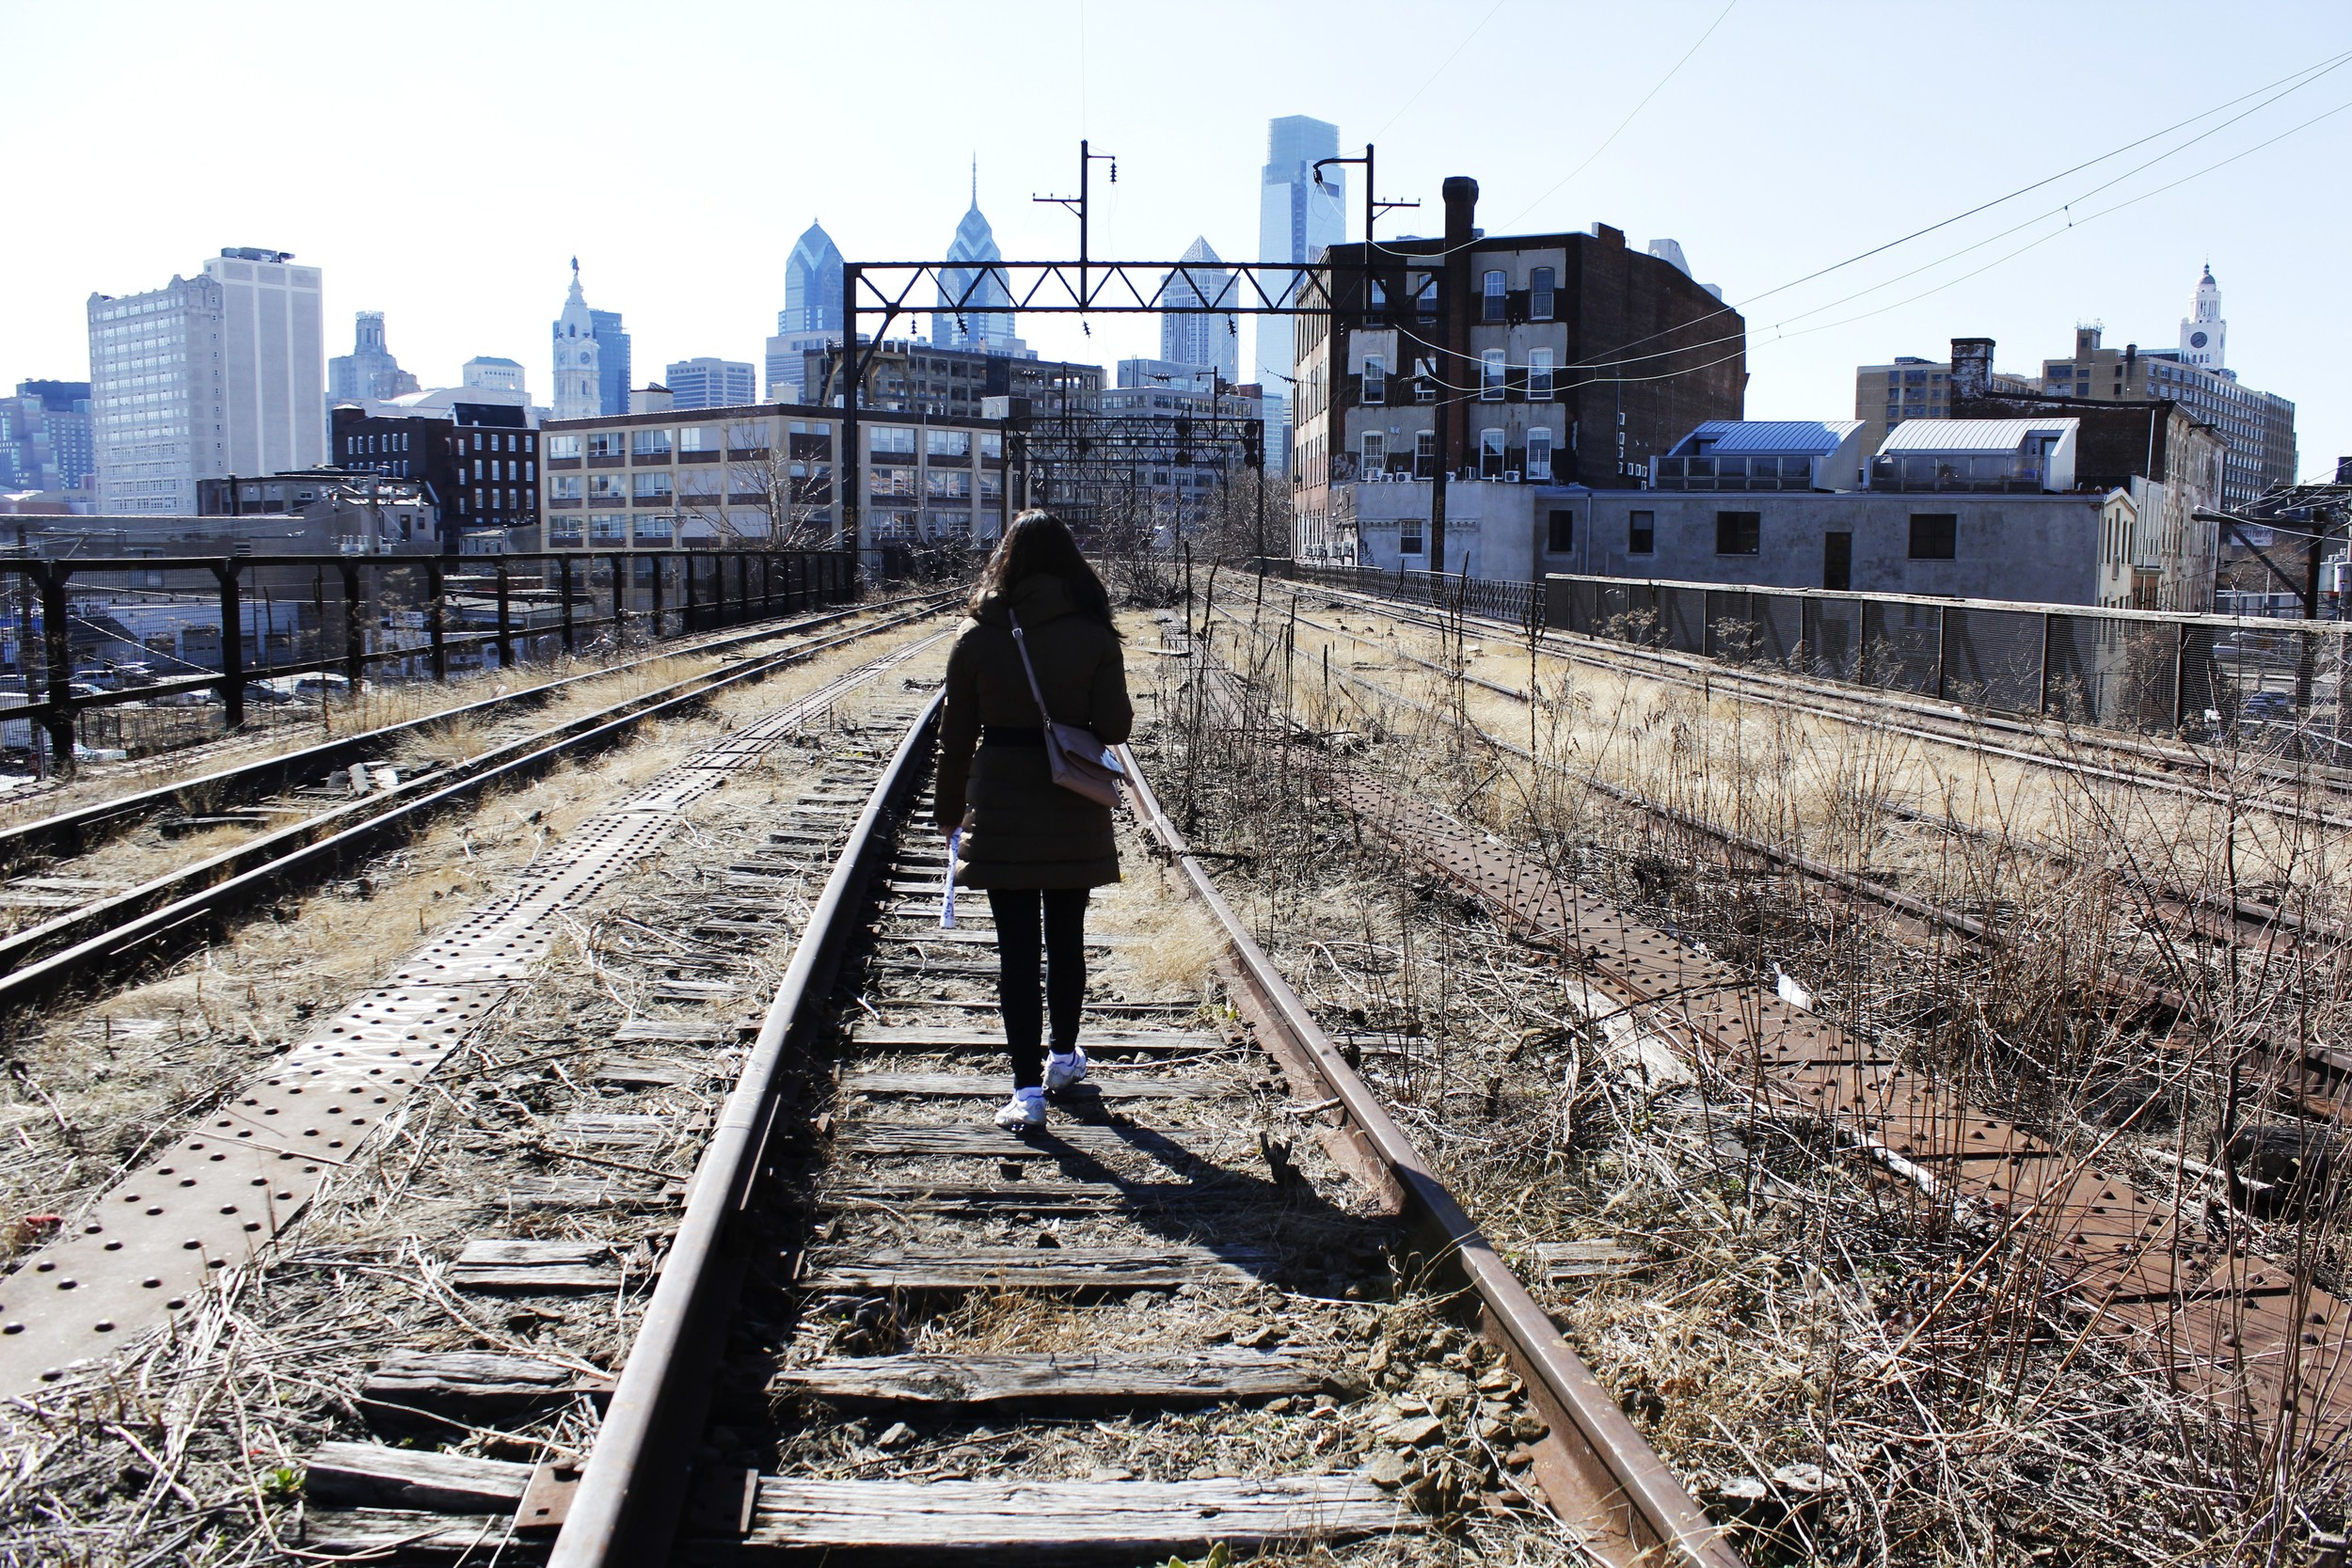 The former Philadelphia and Reading Railroad with incredible views of downtown Philadelphia  photo by Susan Kolber